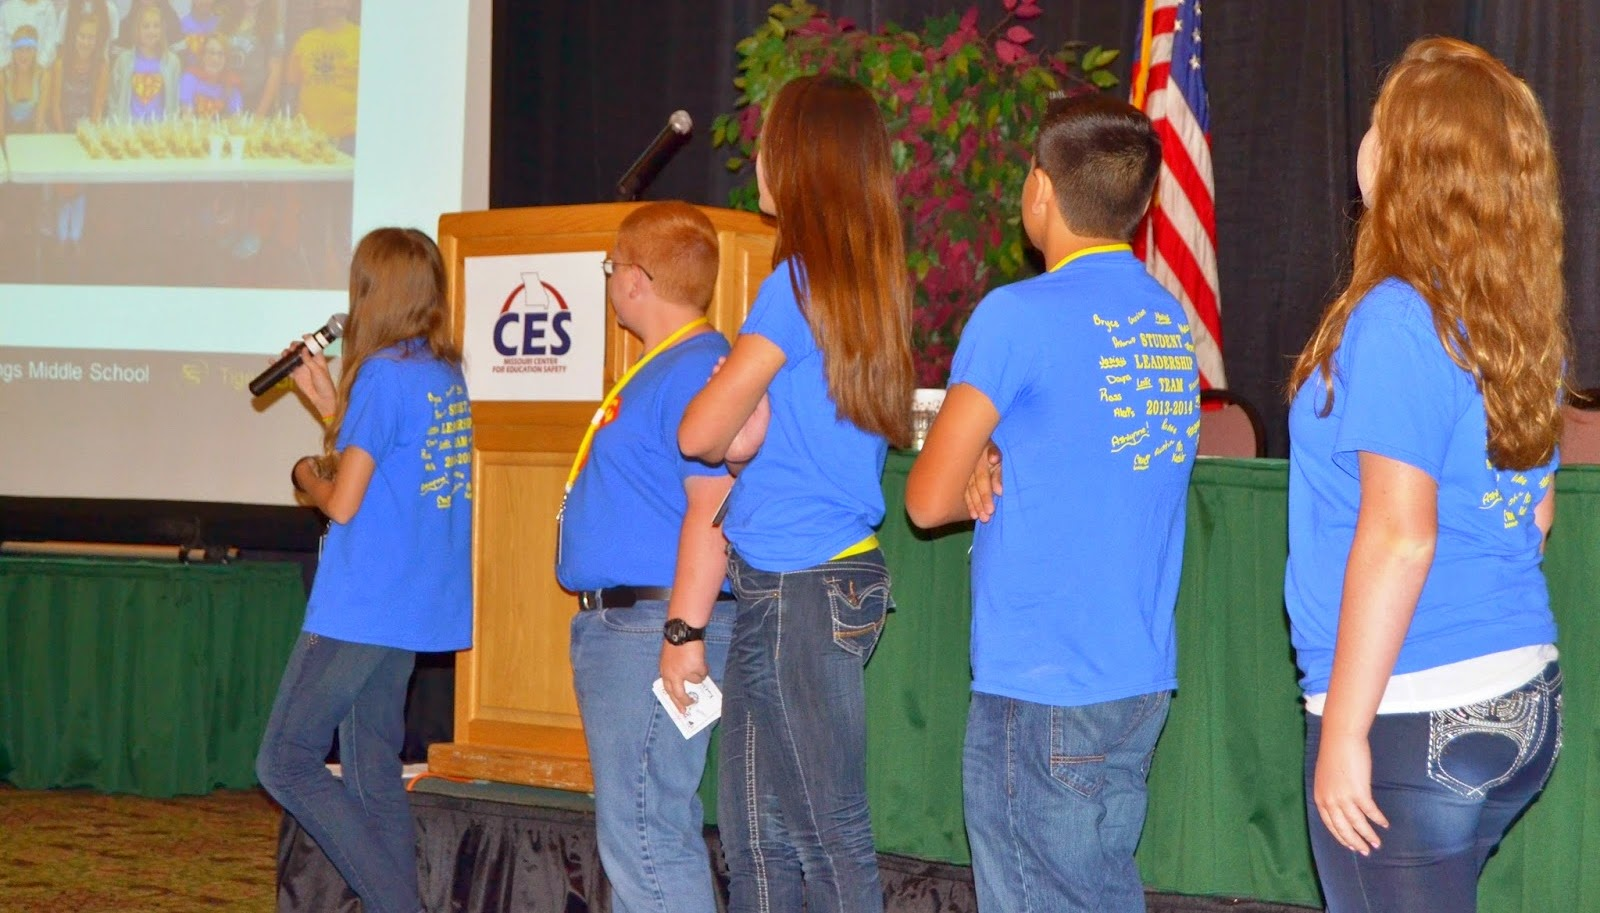 Classroom Incentive Ideas For Middle School : Pbis middle school incentive programs muse technologies